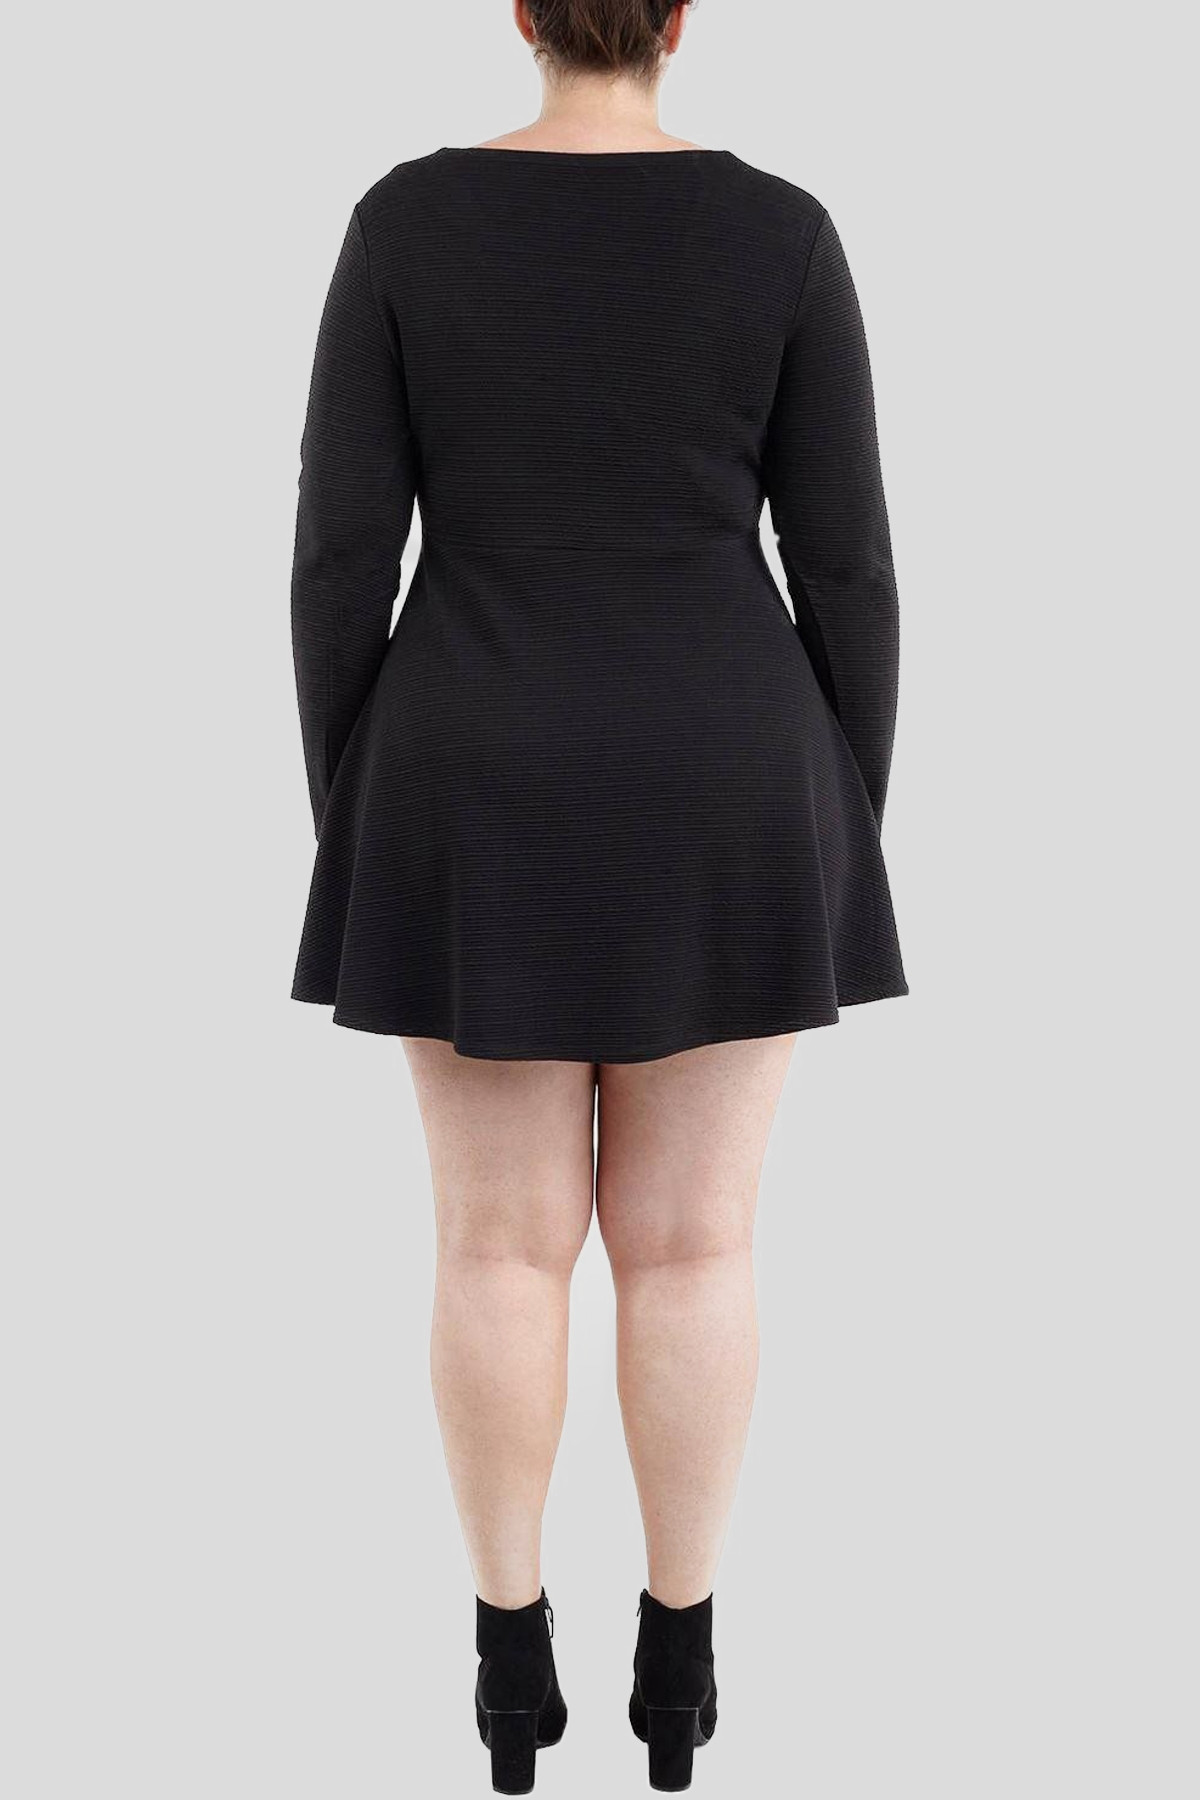 Lisa Plus Size Long Sleeve Zipper Skater Dress 16-22